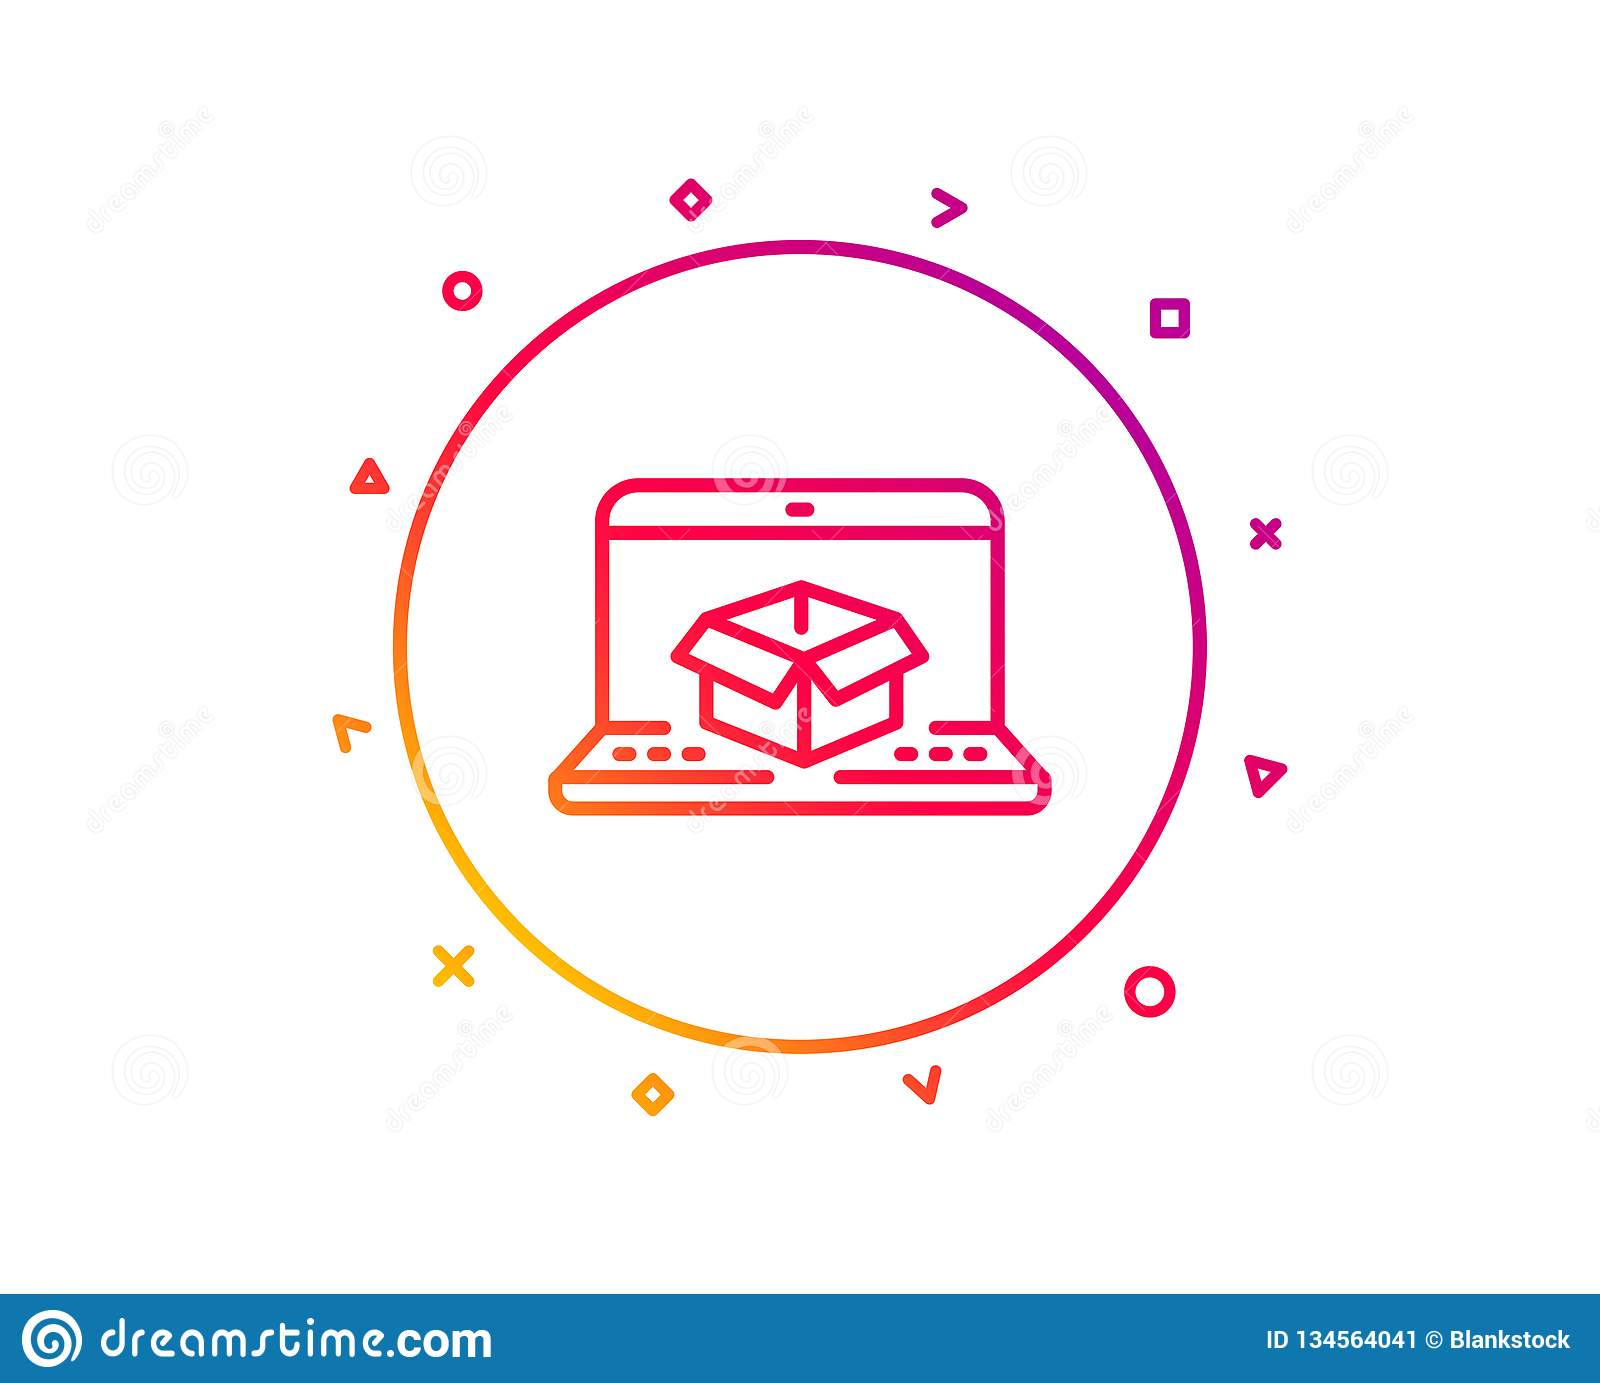 Online Delivery Line Icon  Parcel Tracking Sign  Vector